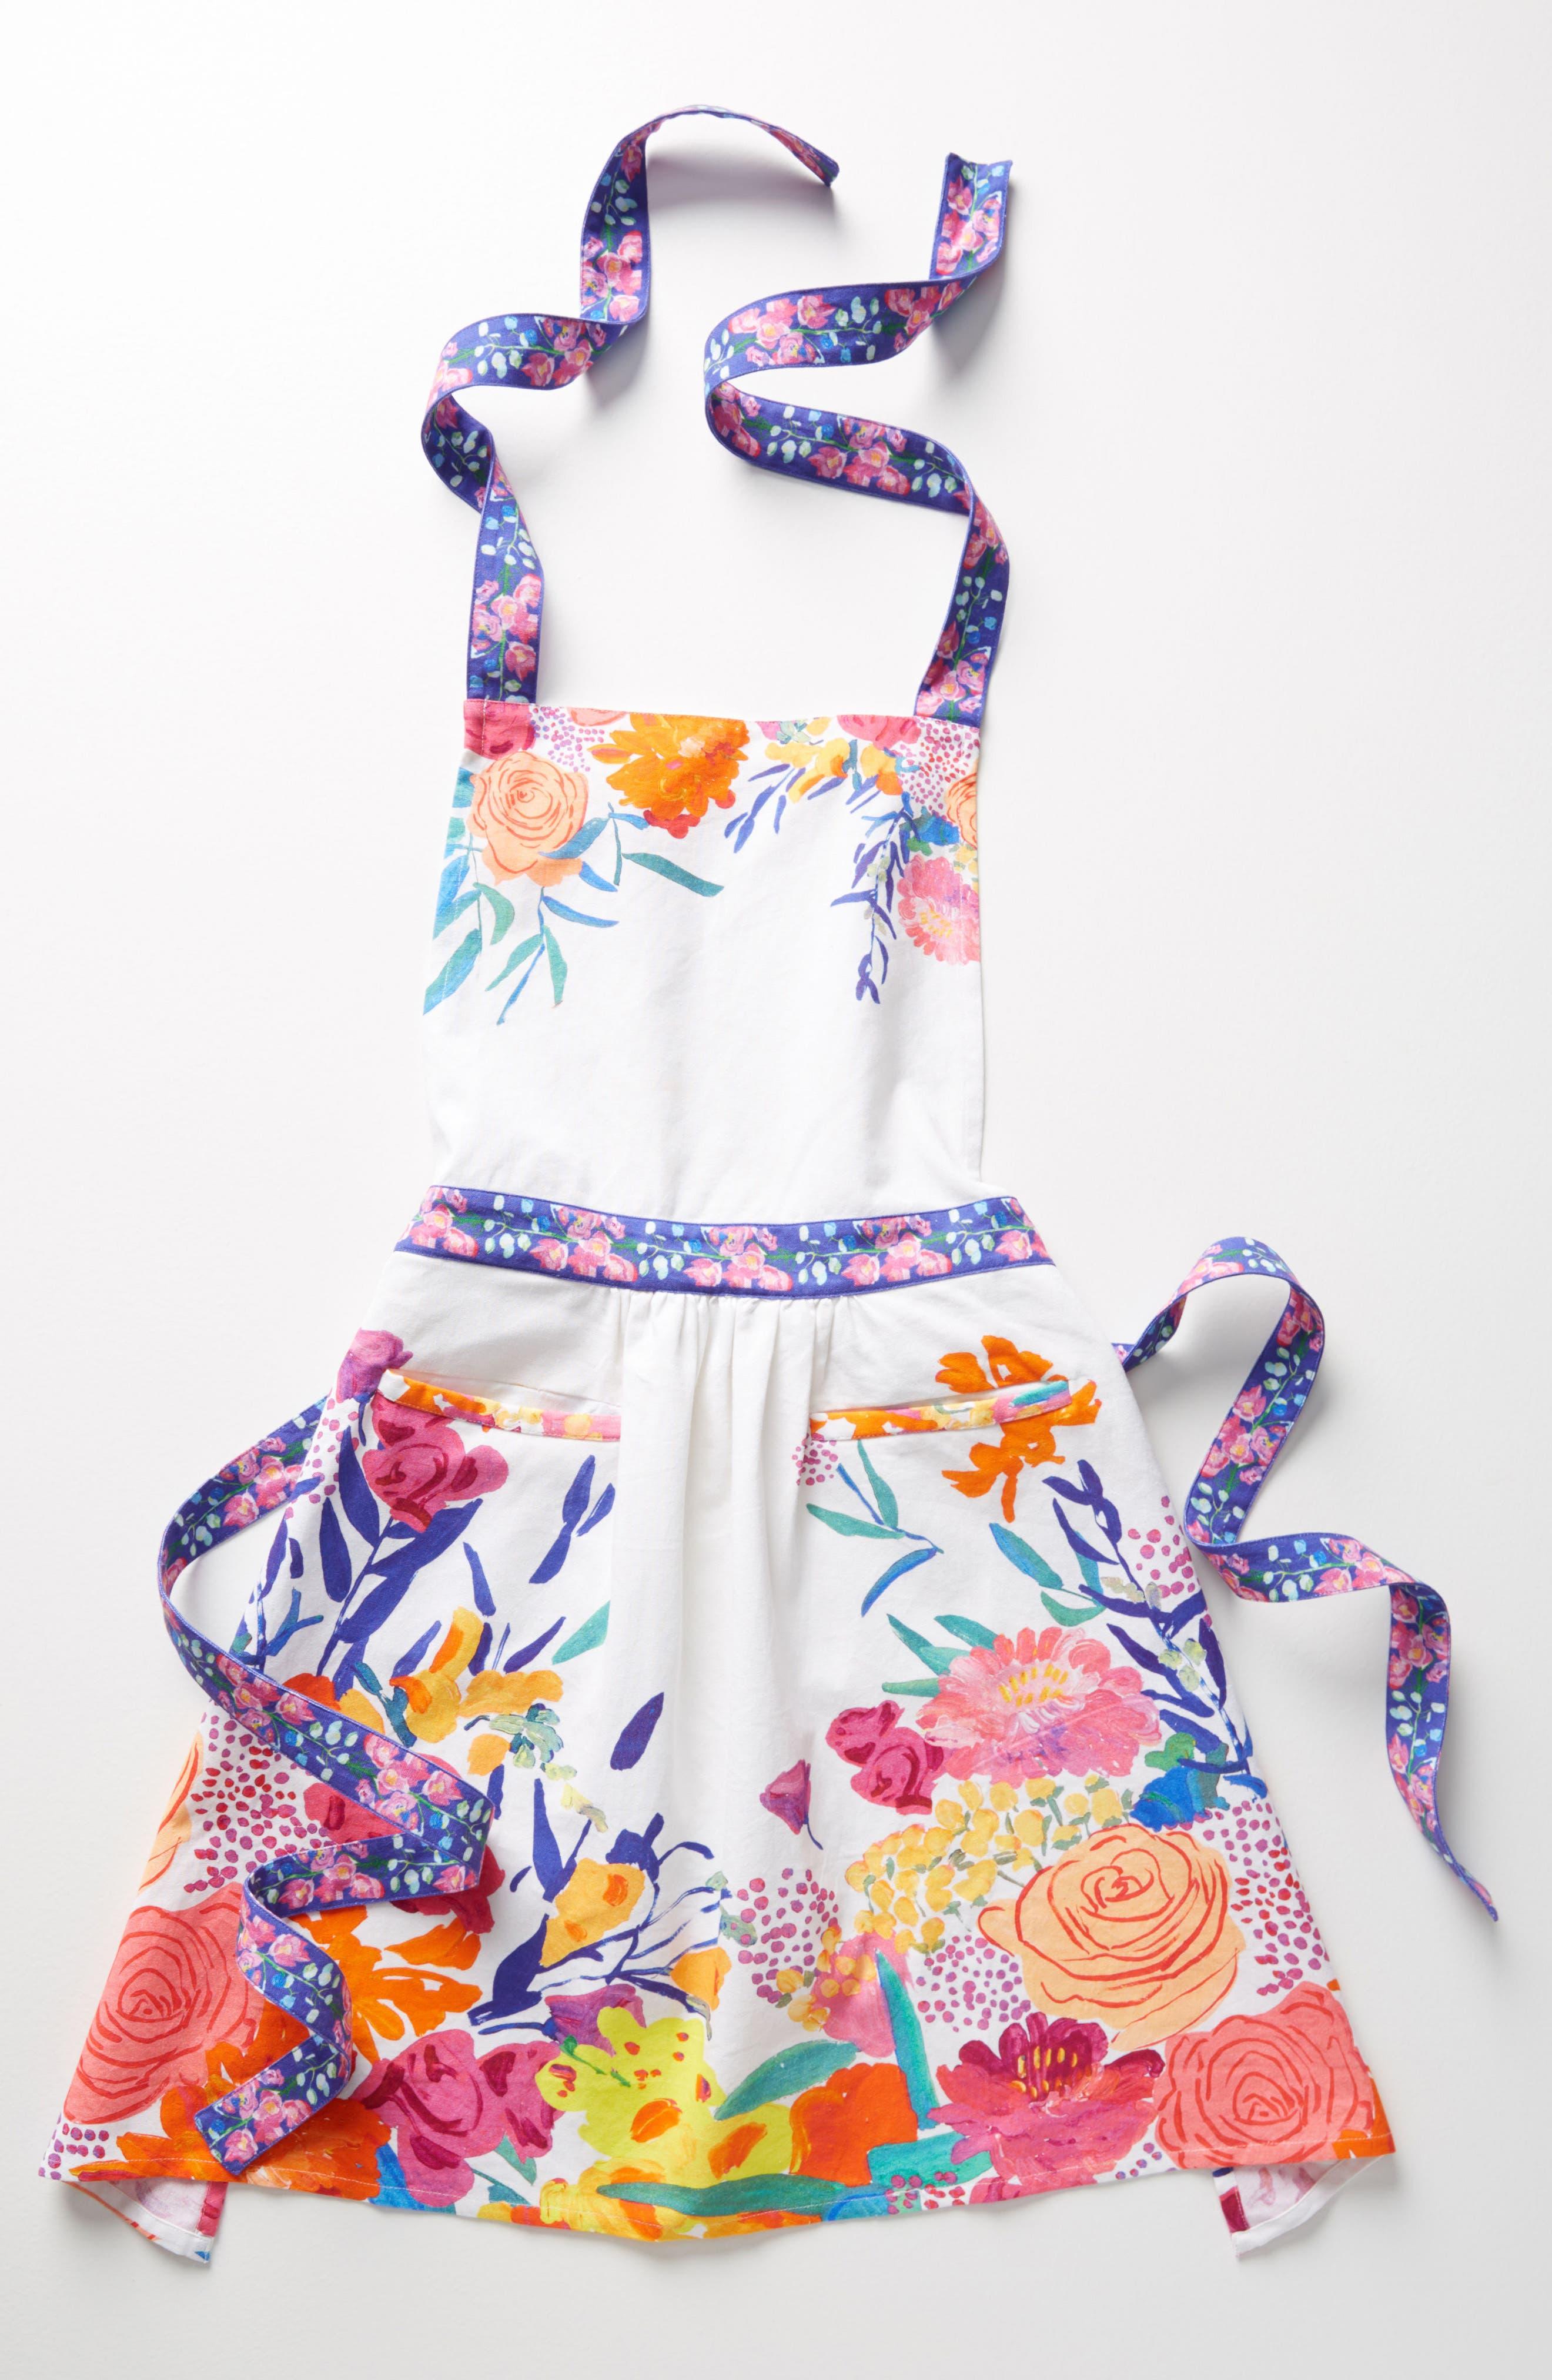 Paint + Petals Apron,                         Main,                         color, 100